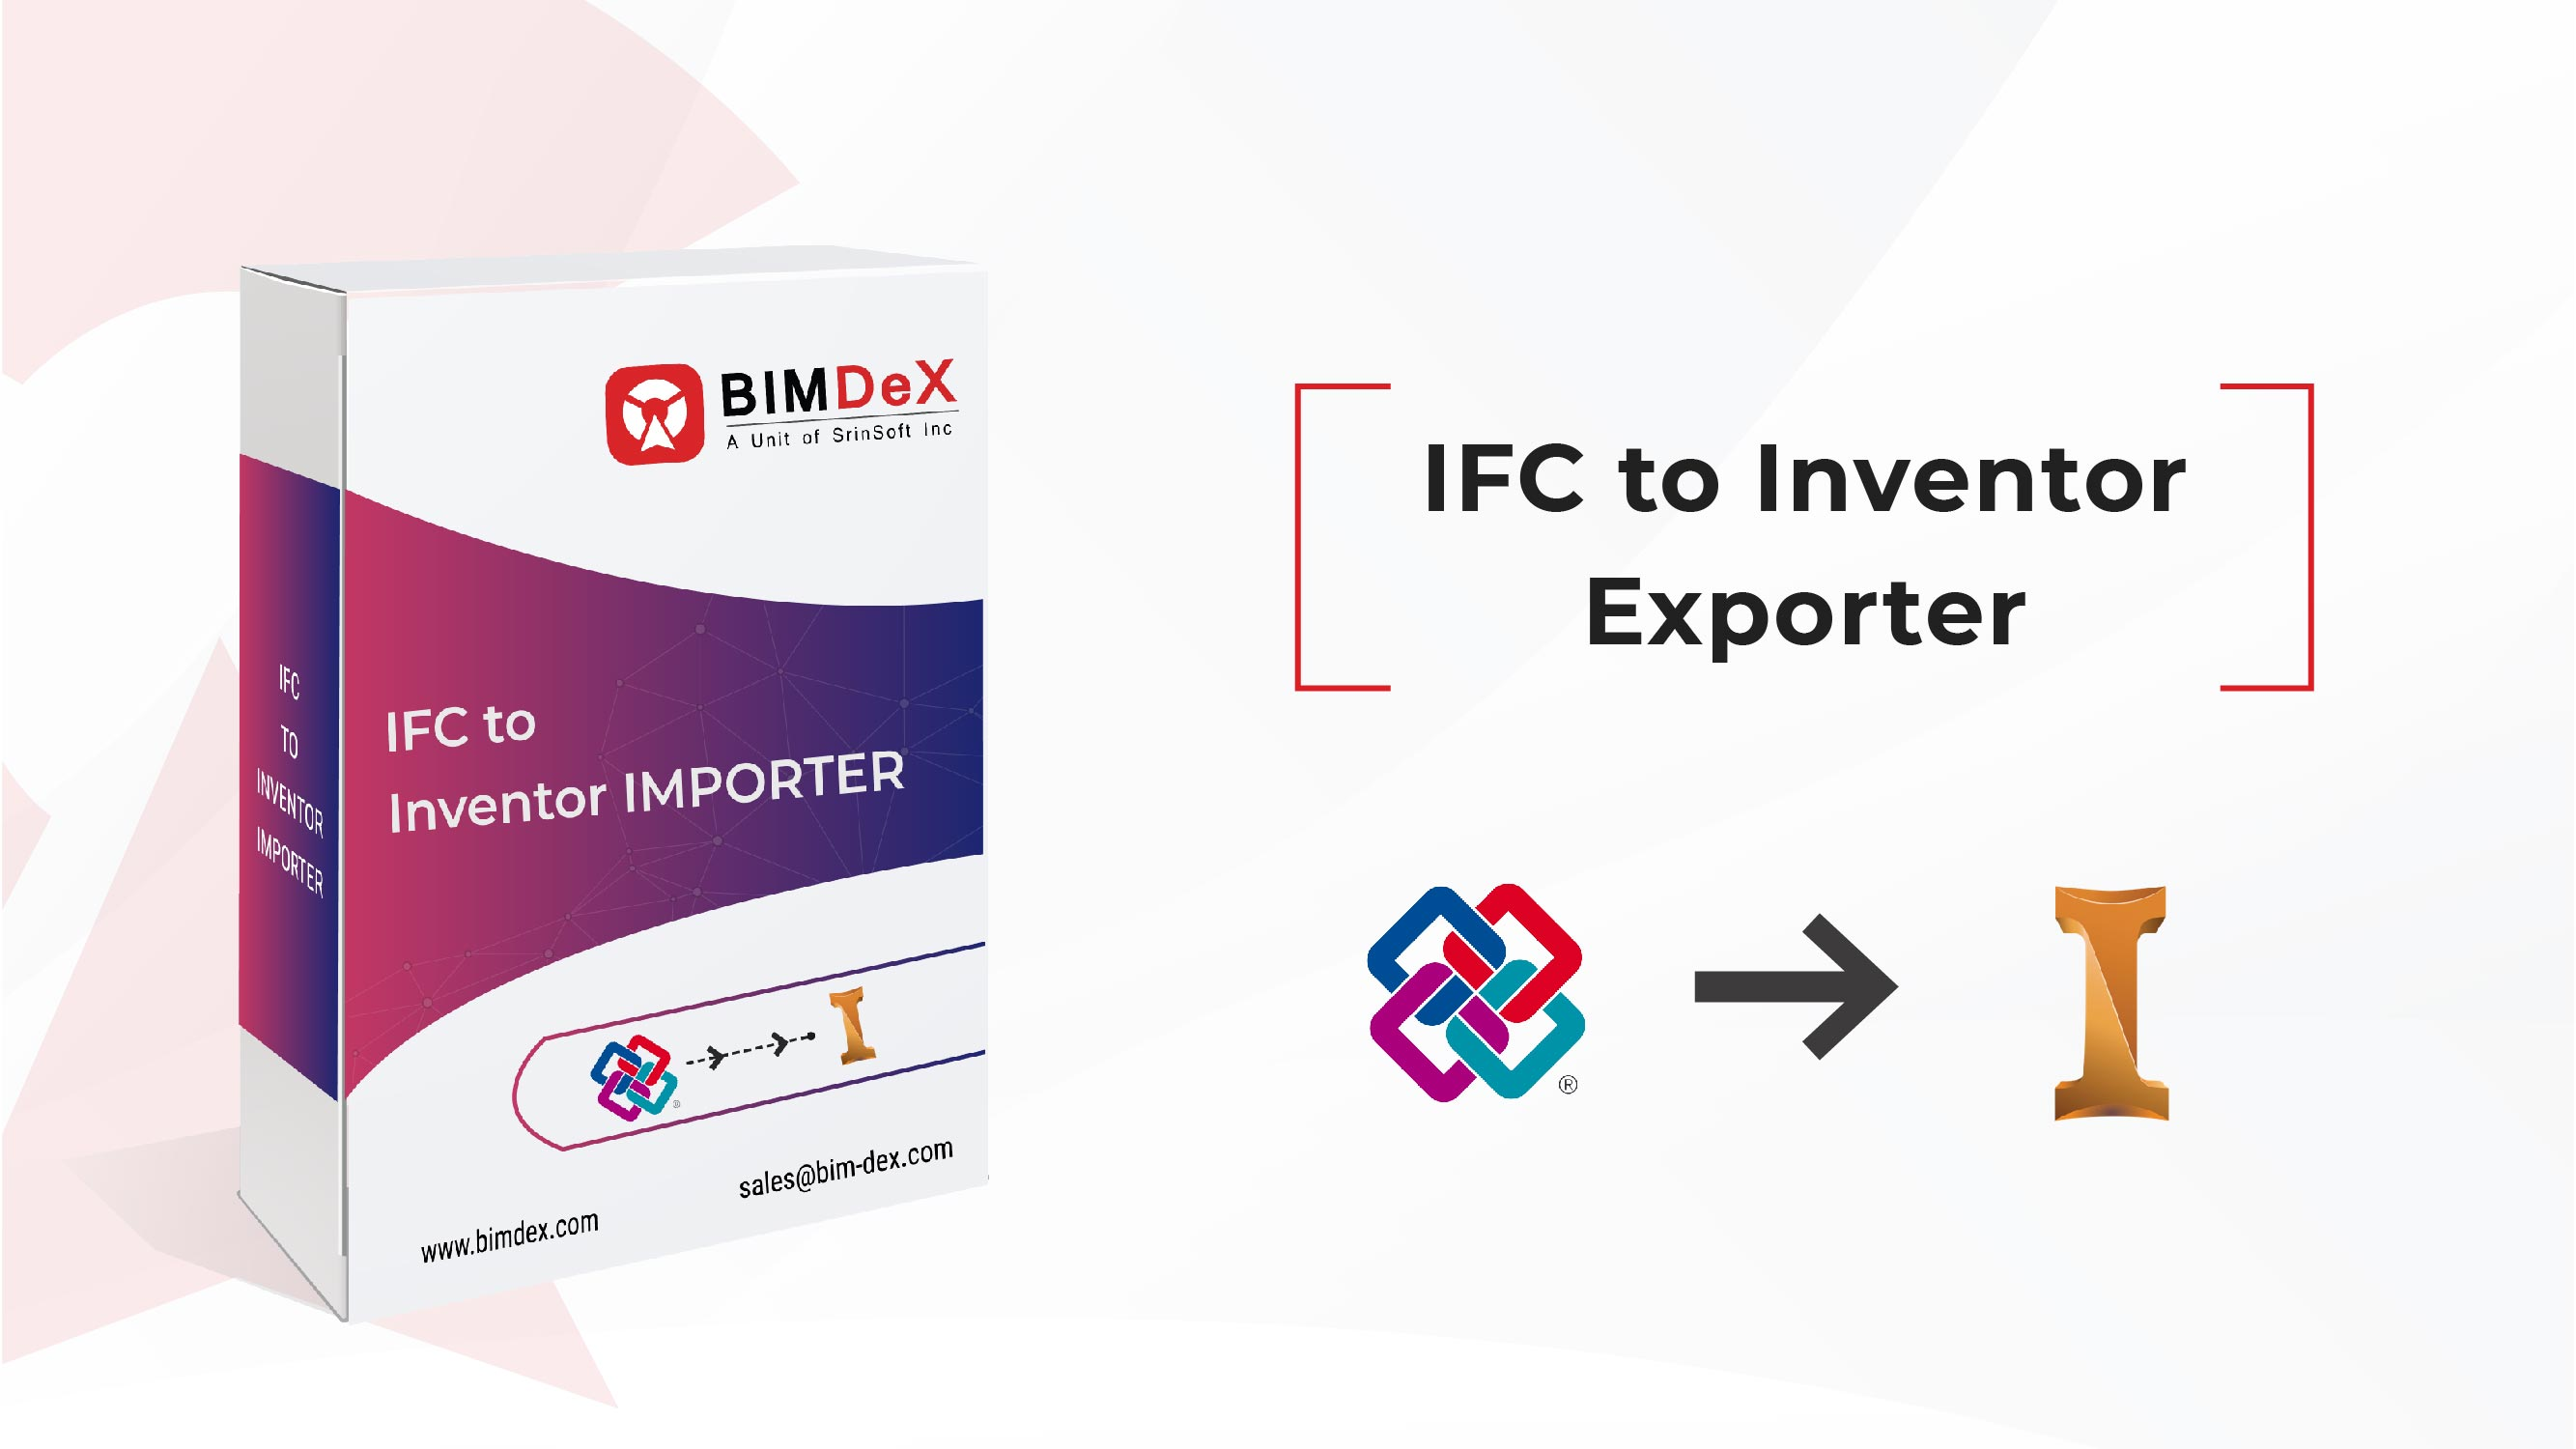 IFC to Inventor